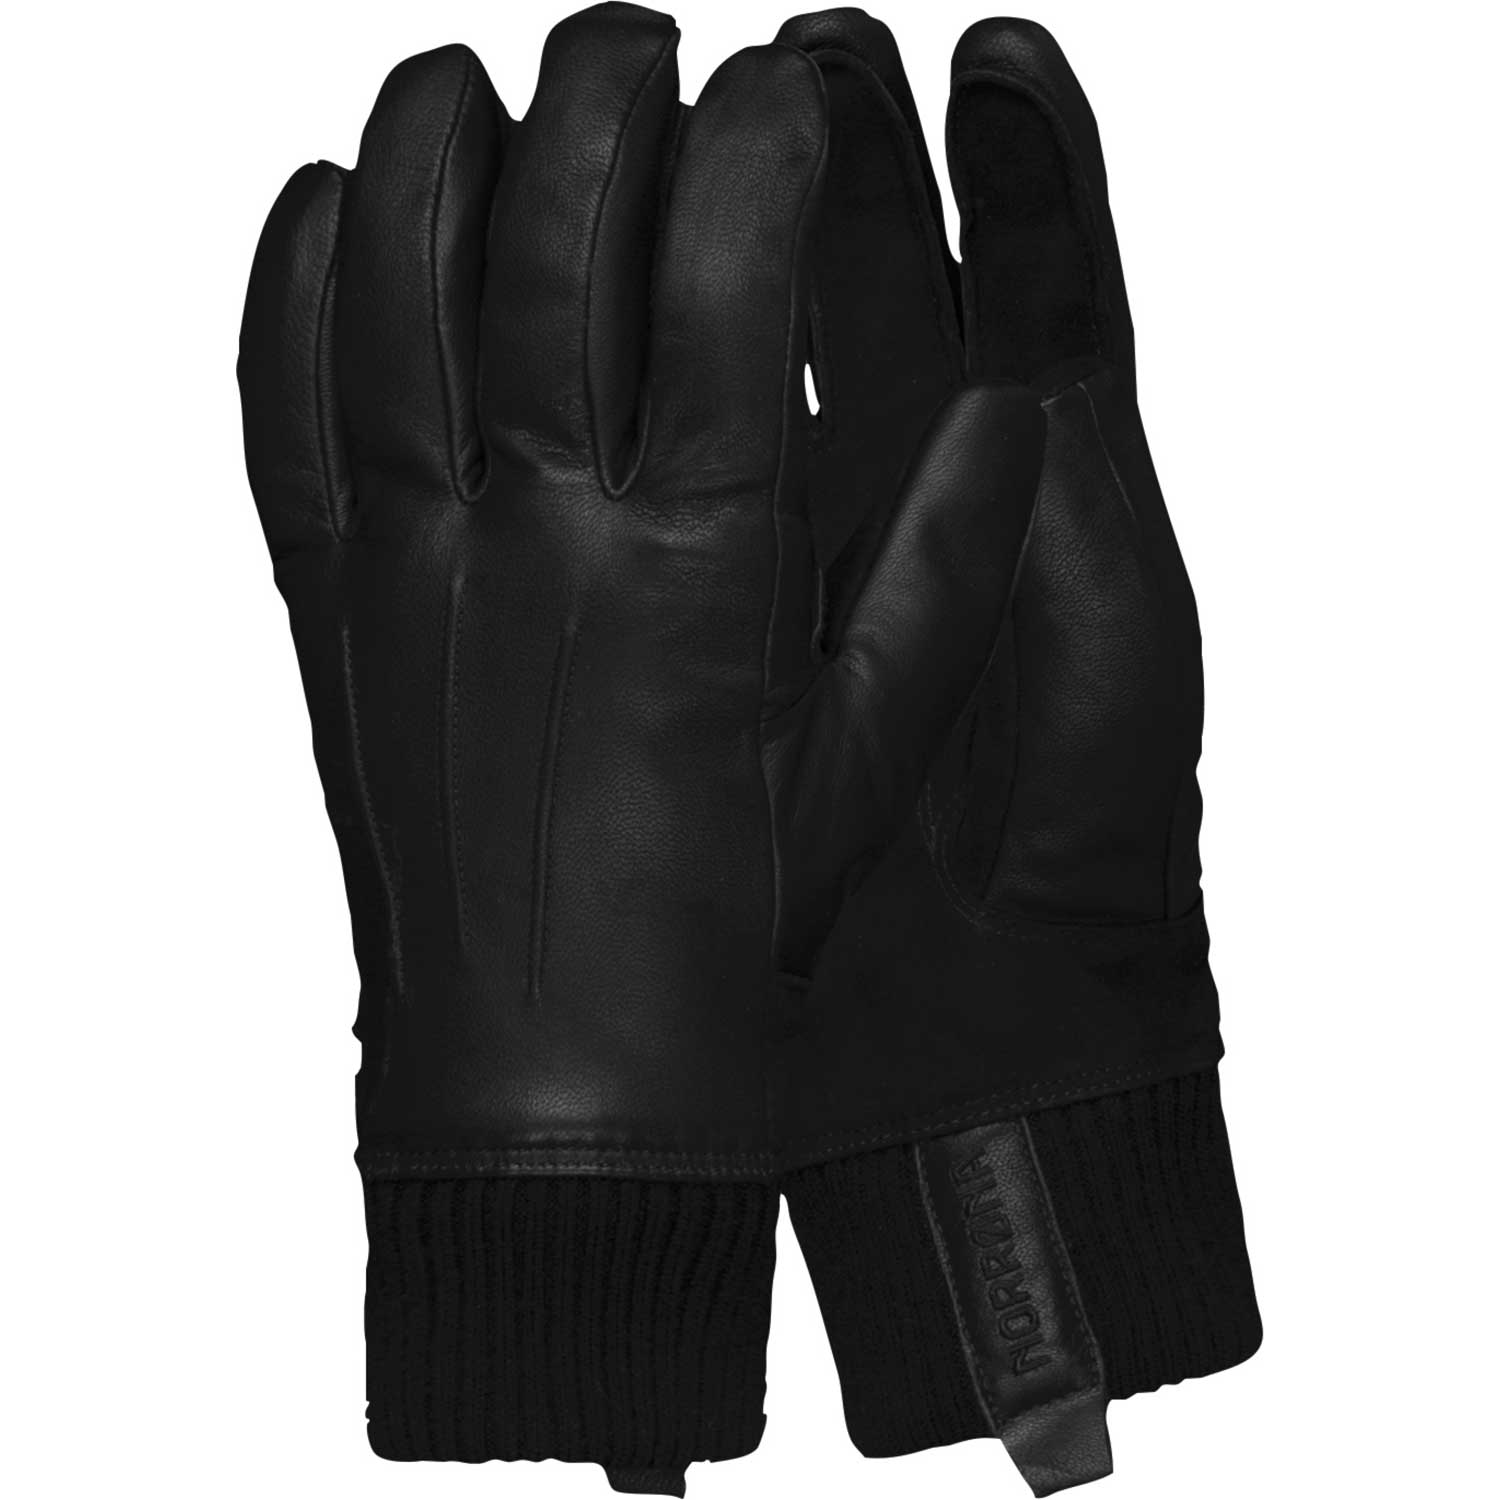 roldal dri insulated Leather Gloves